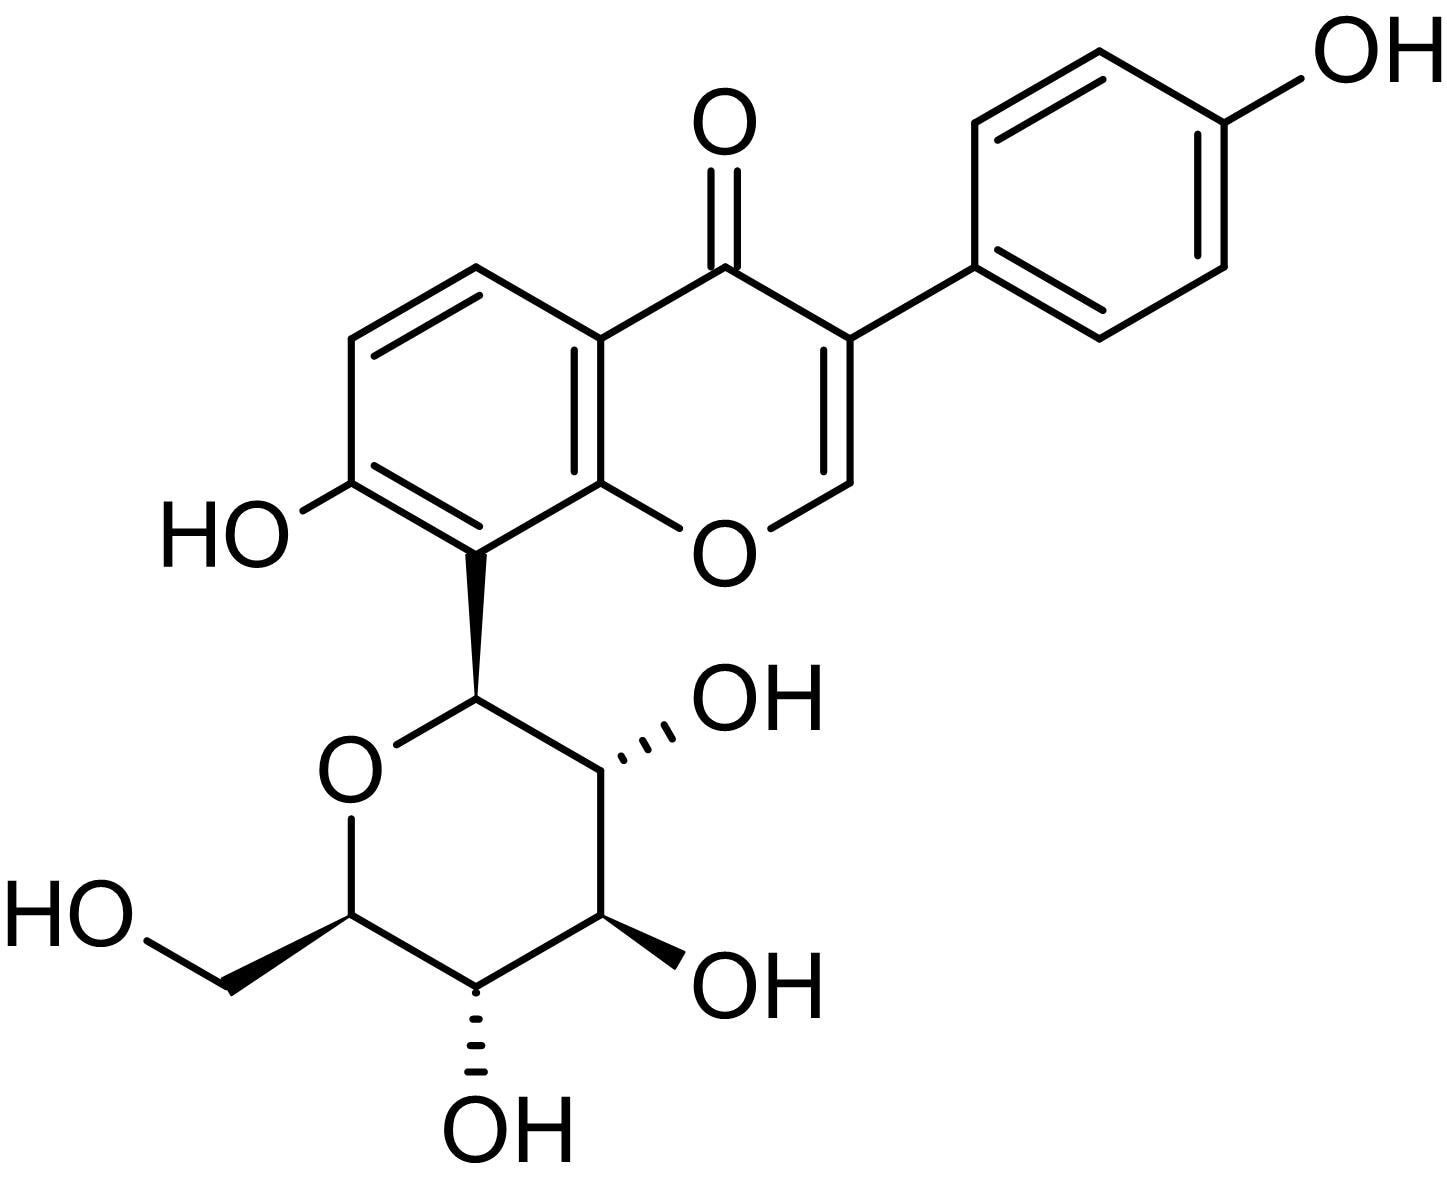 Chemical Structure - Puerarin, Plant derived isoflavone (ab142939)